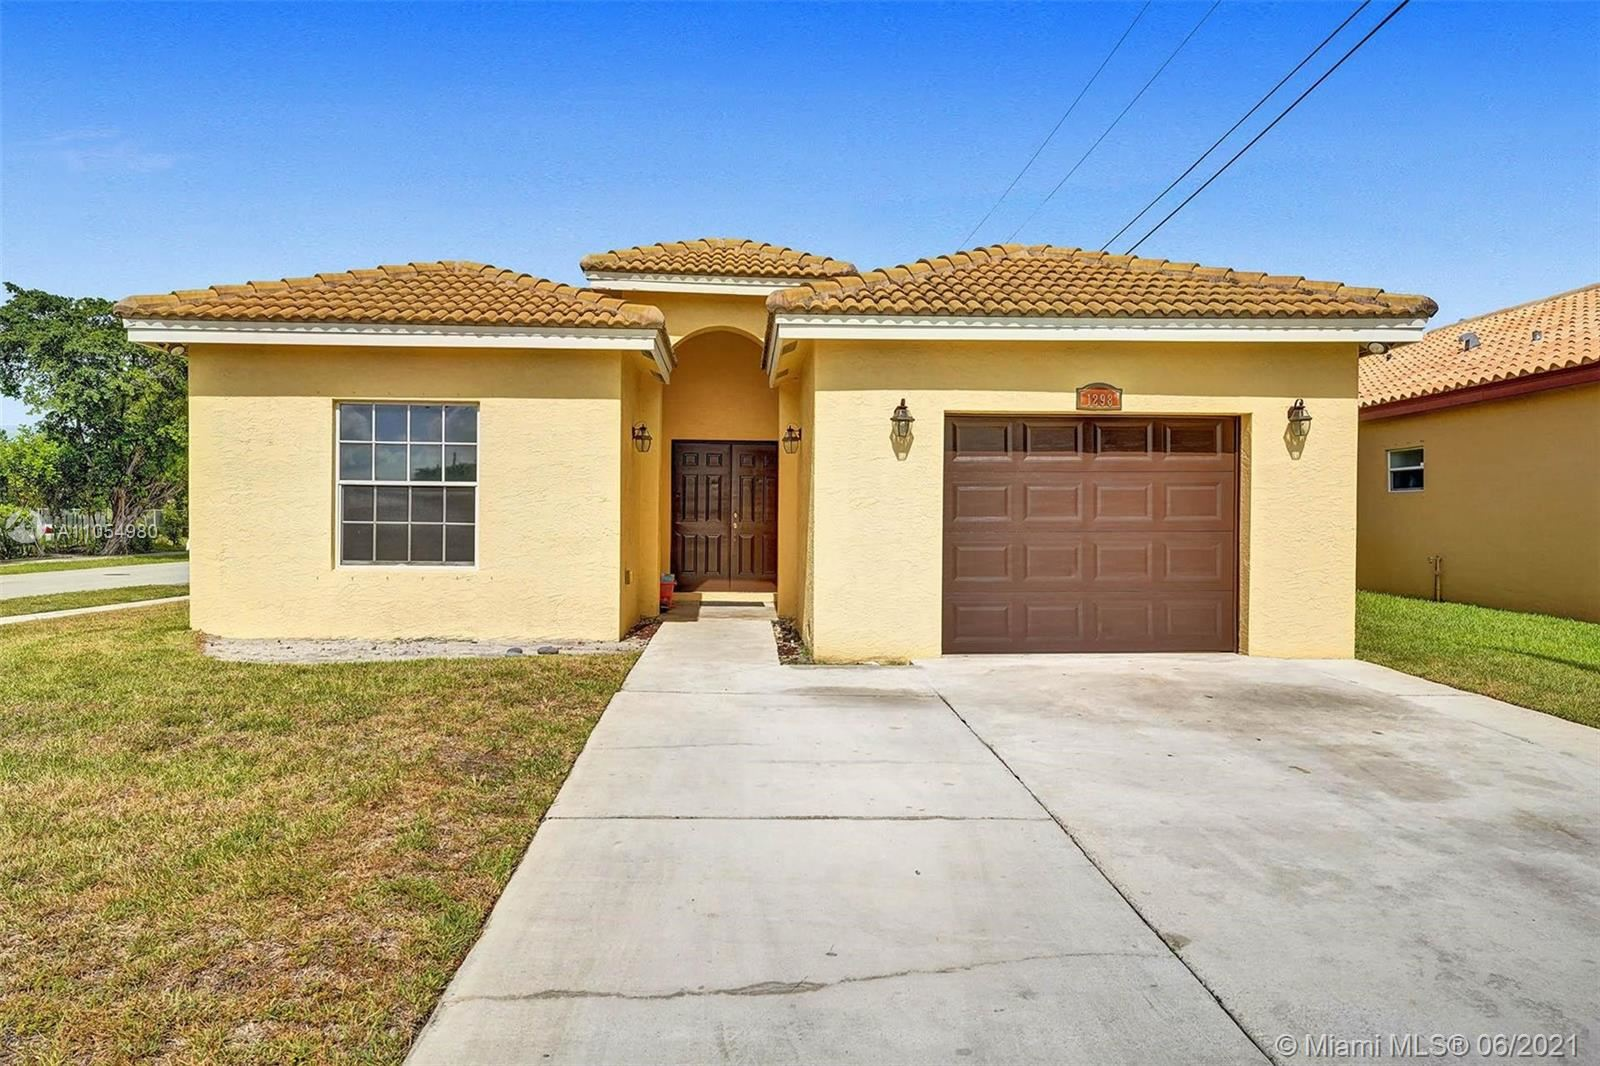 1298 NW 29th Way, Fort Lauderdale, FL 33311 - #: A11054980